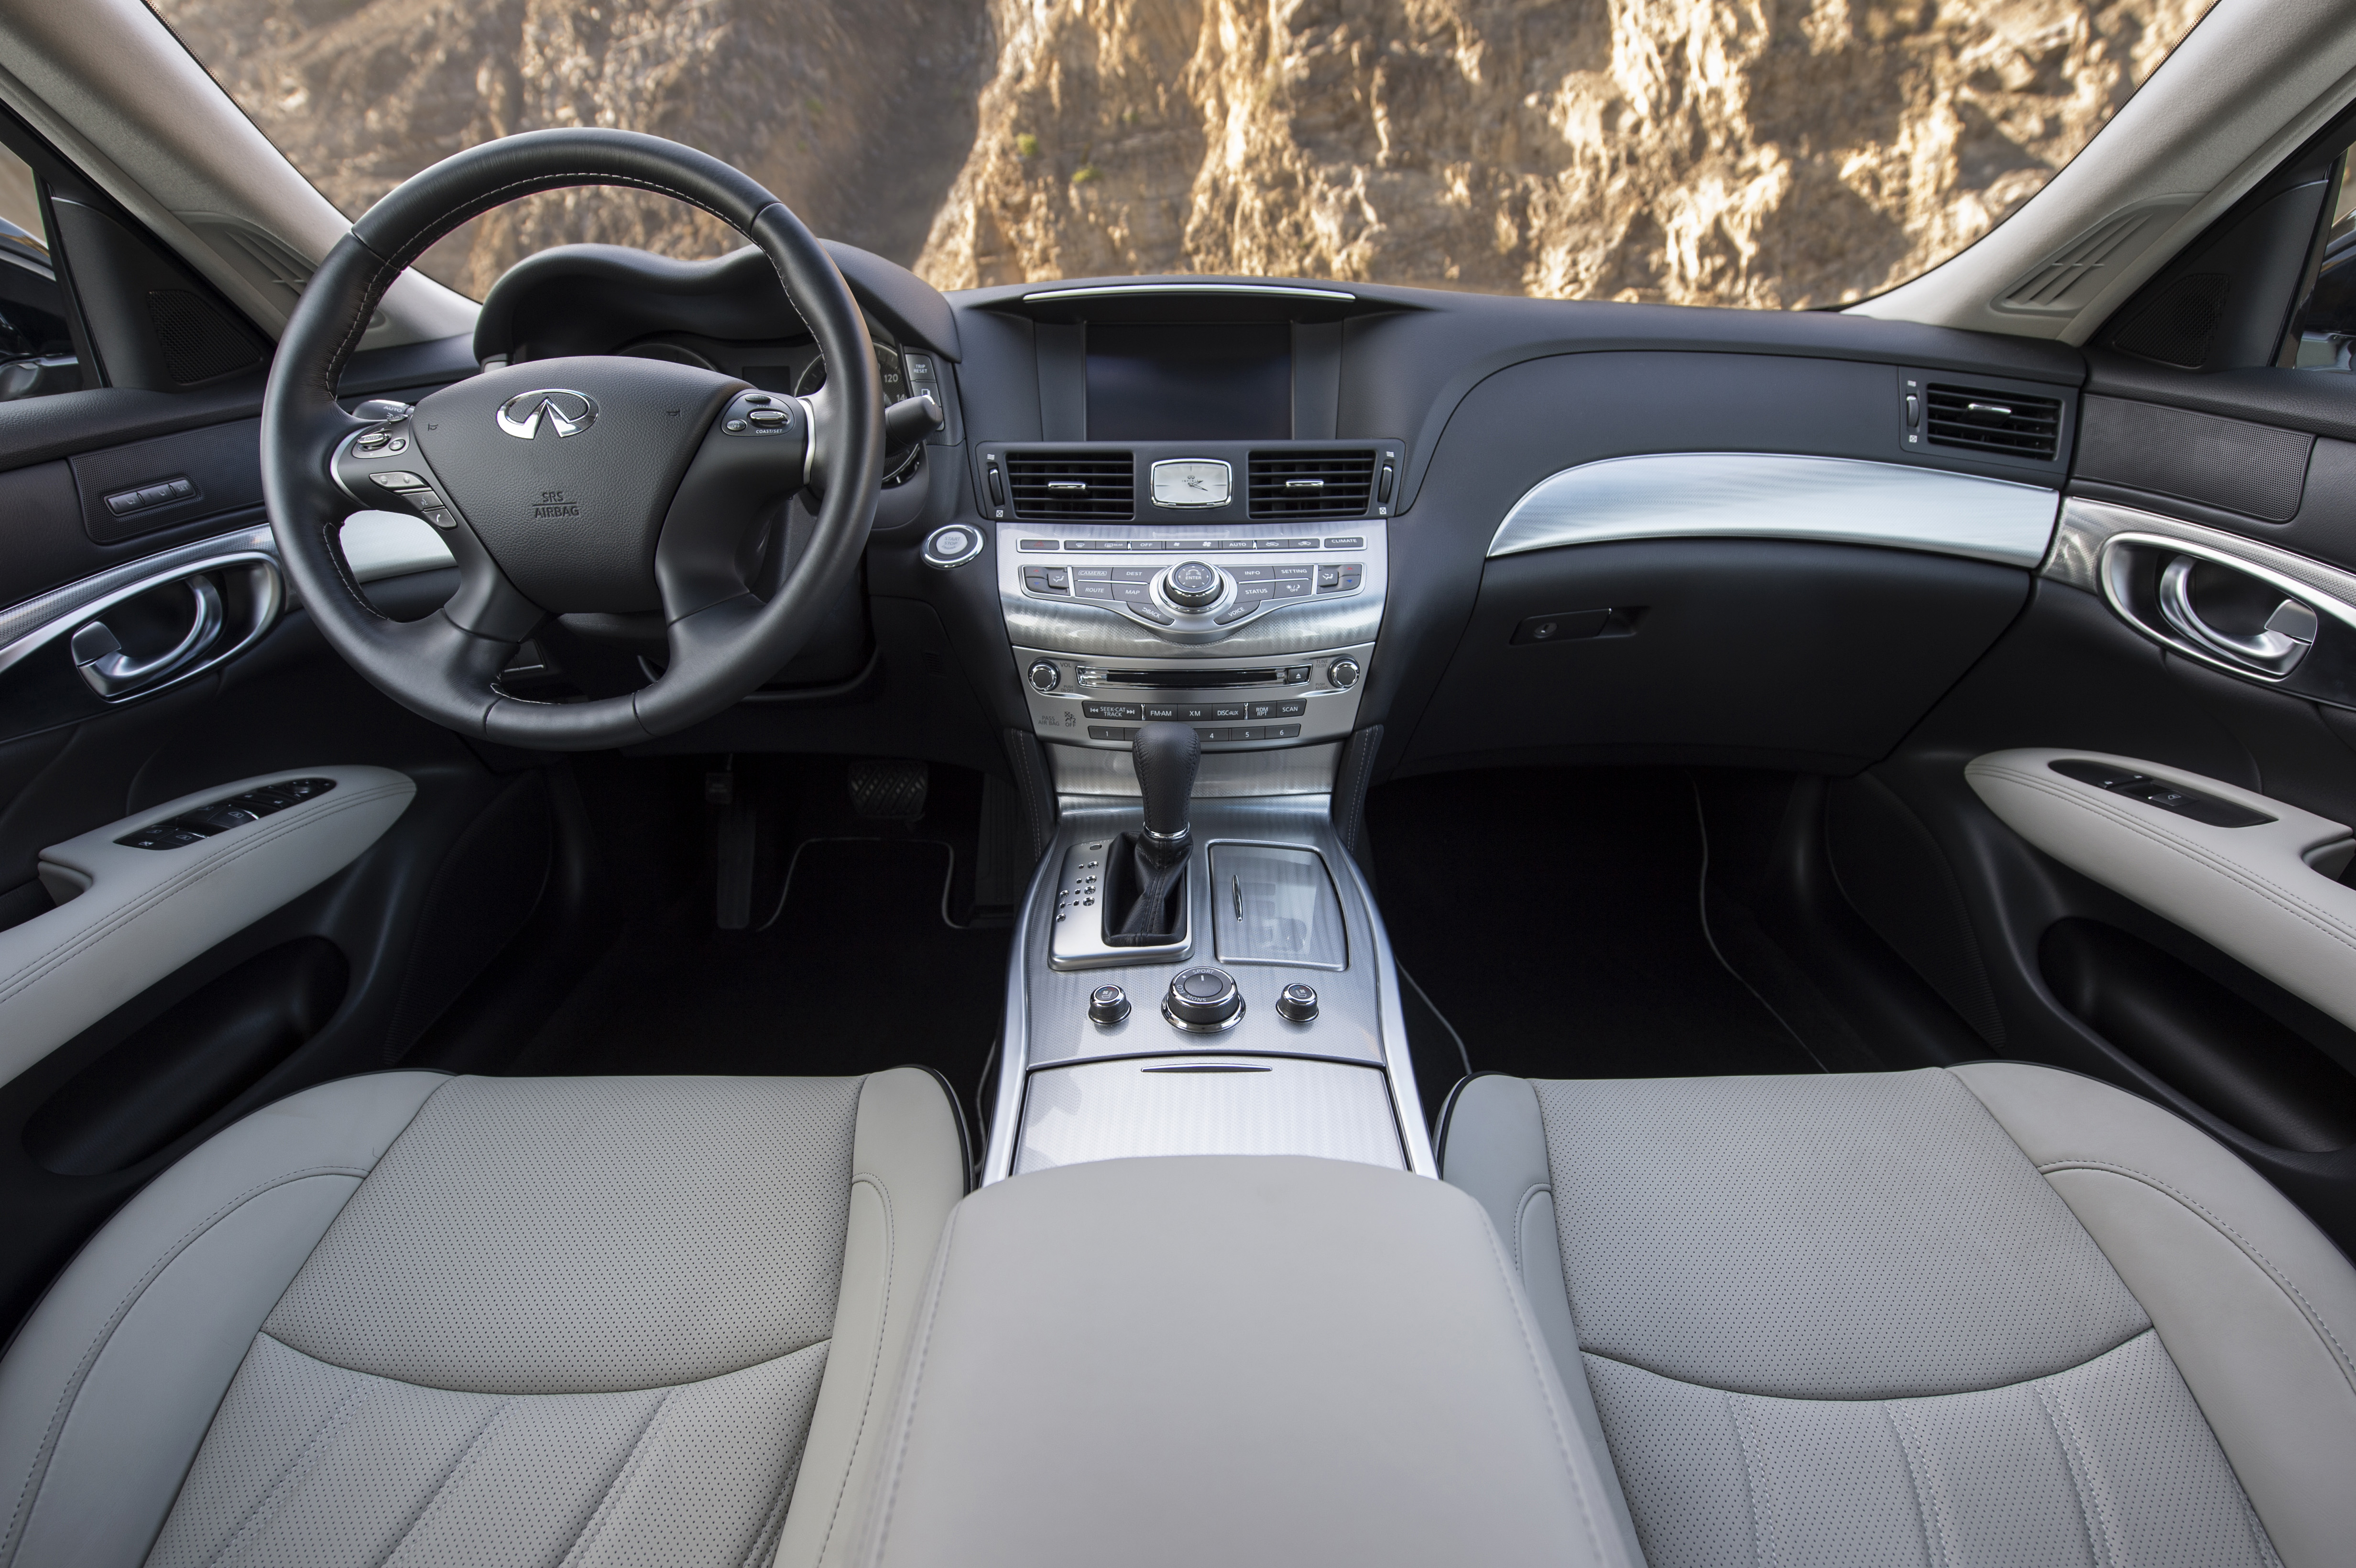 The 2018 Infiniti Q70 offers luxury and plenty of room, but shows its age with the infotainment interface.